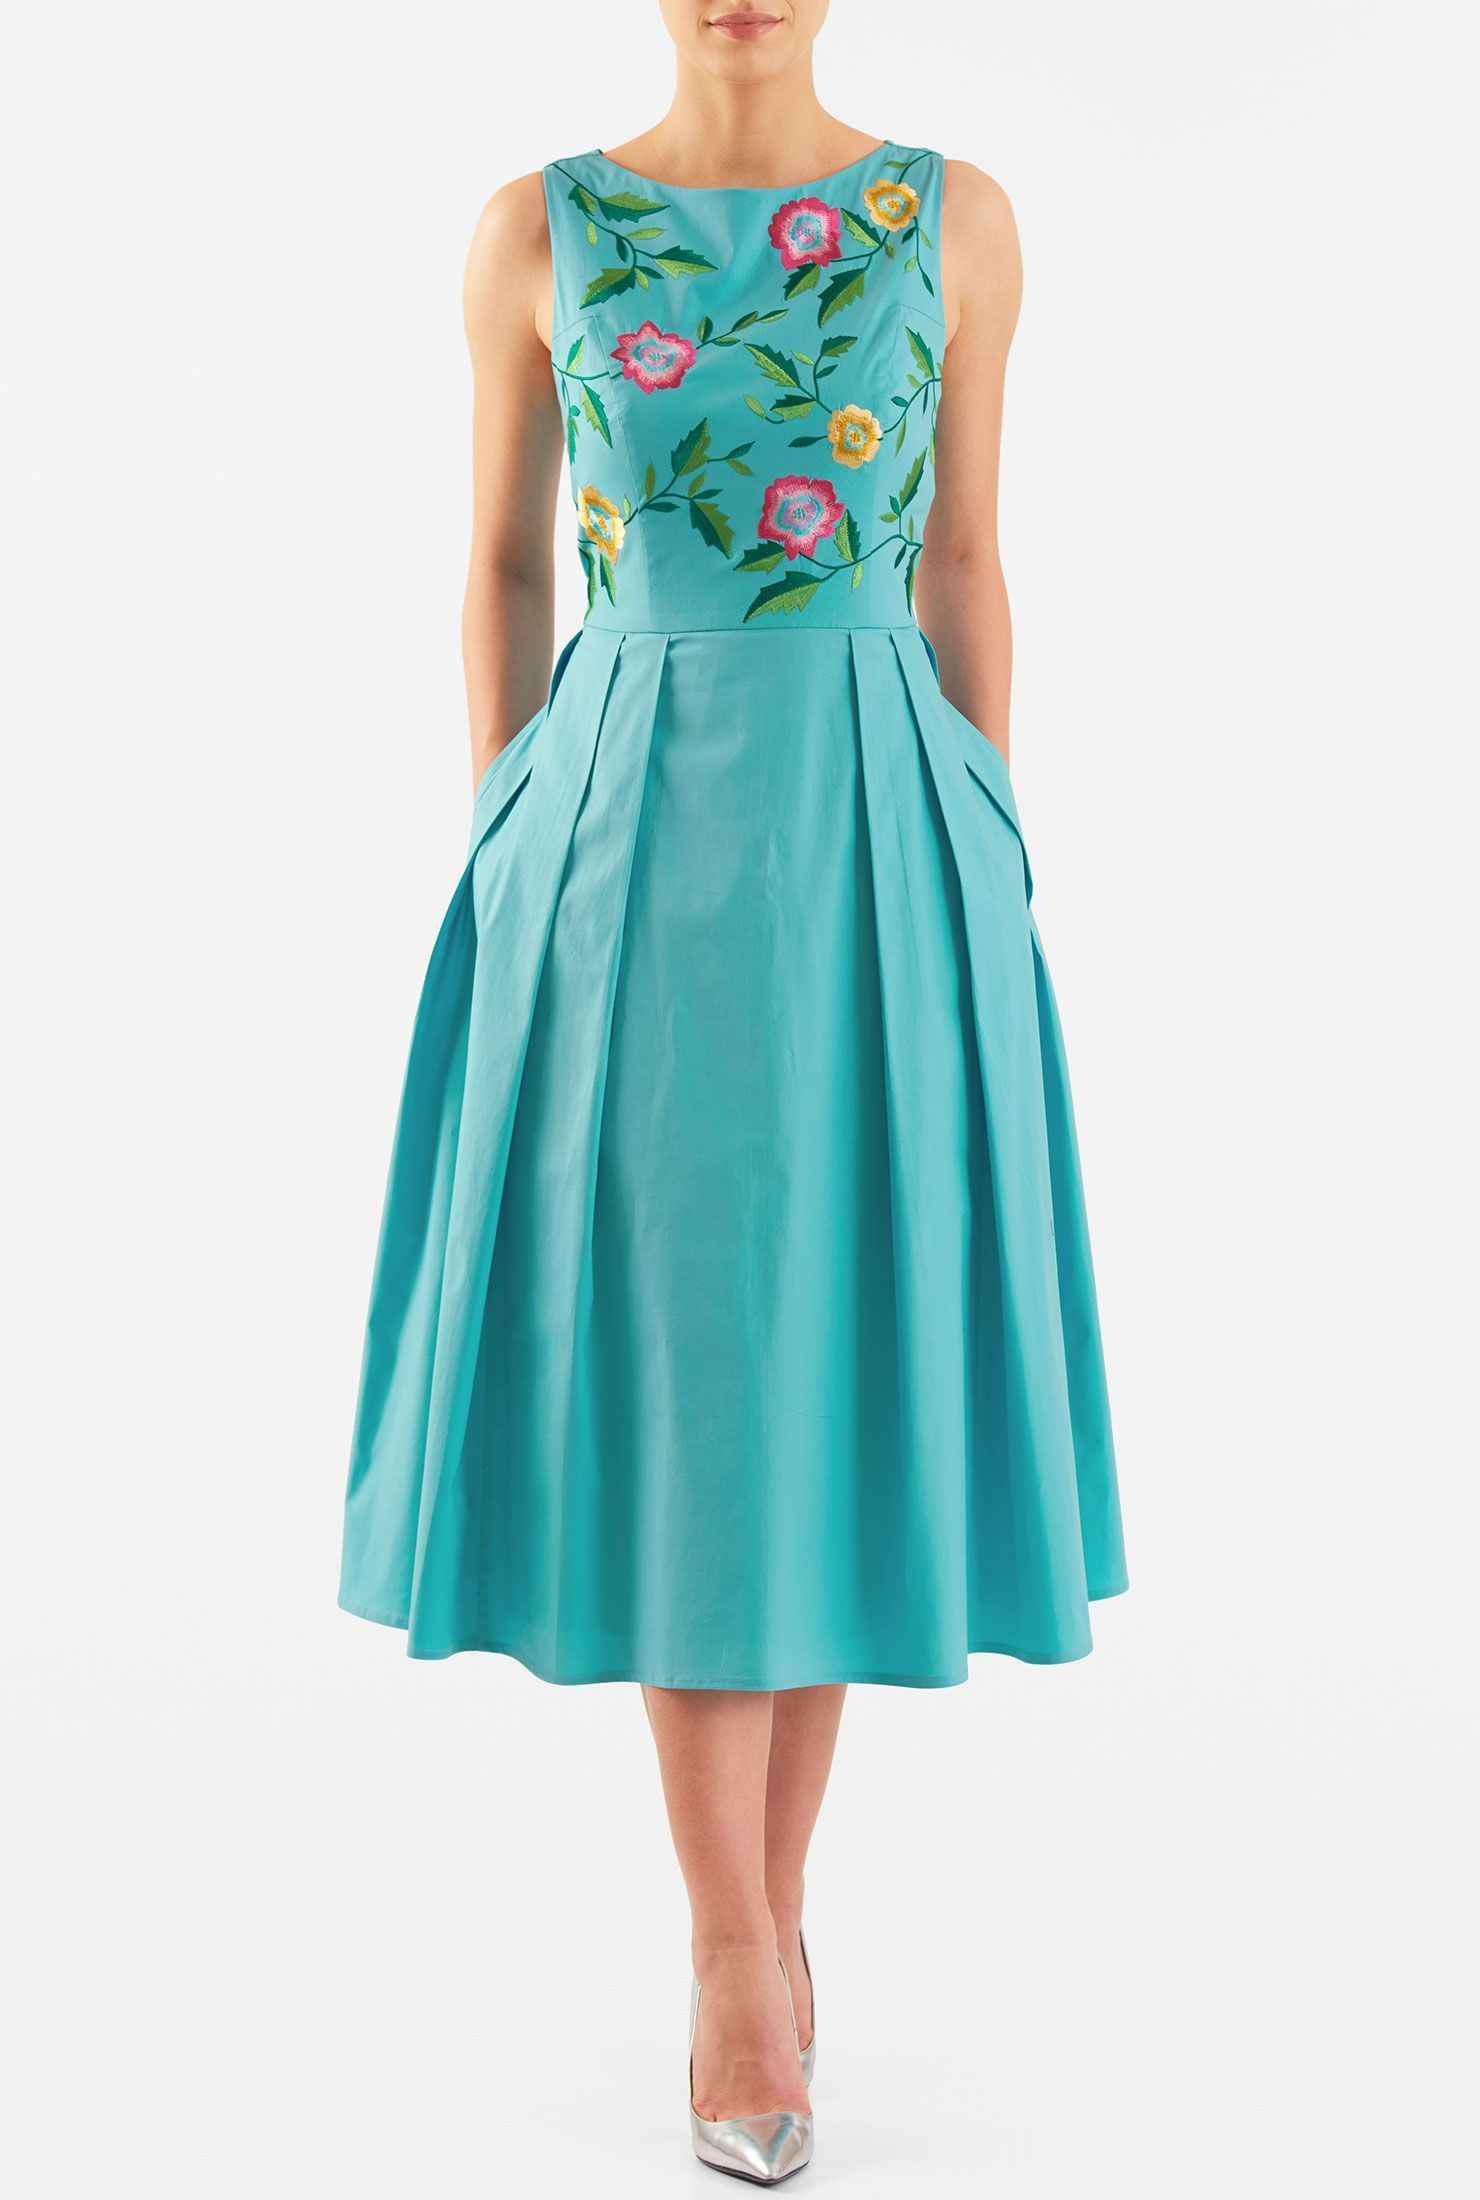 e205f0df9c0956 eshakti--Vibrant embellished florals amp up the sweet charm of our stretch  cotton poplin dress in a flattering fit-and-flare style.